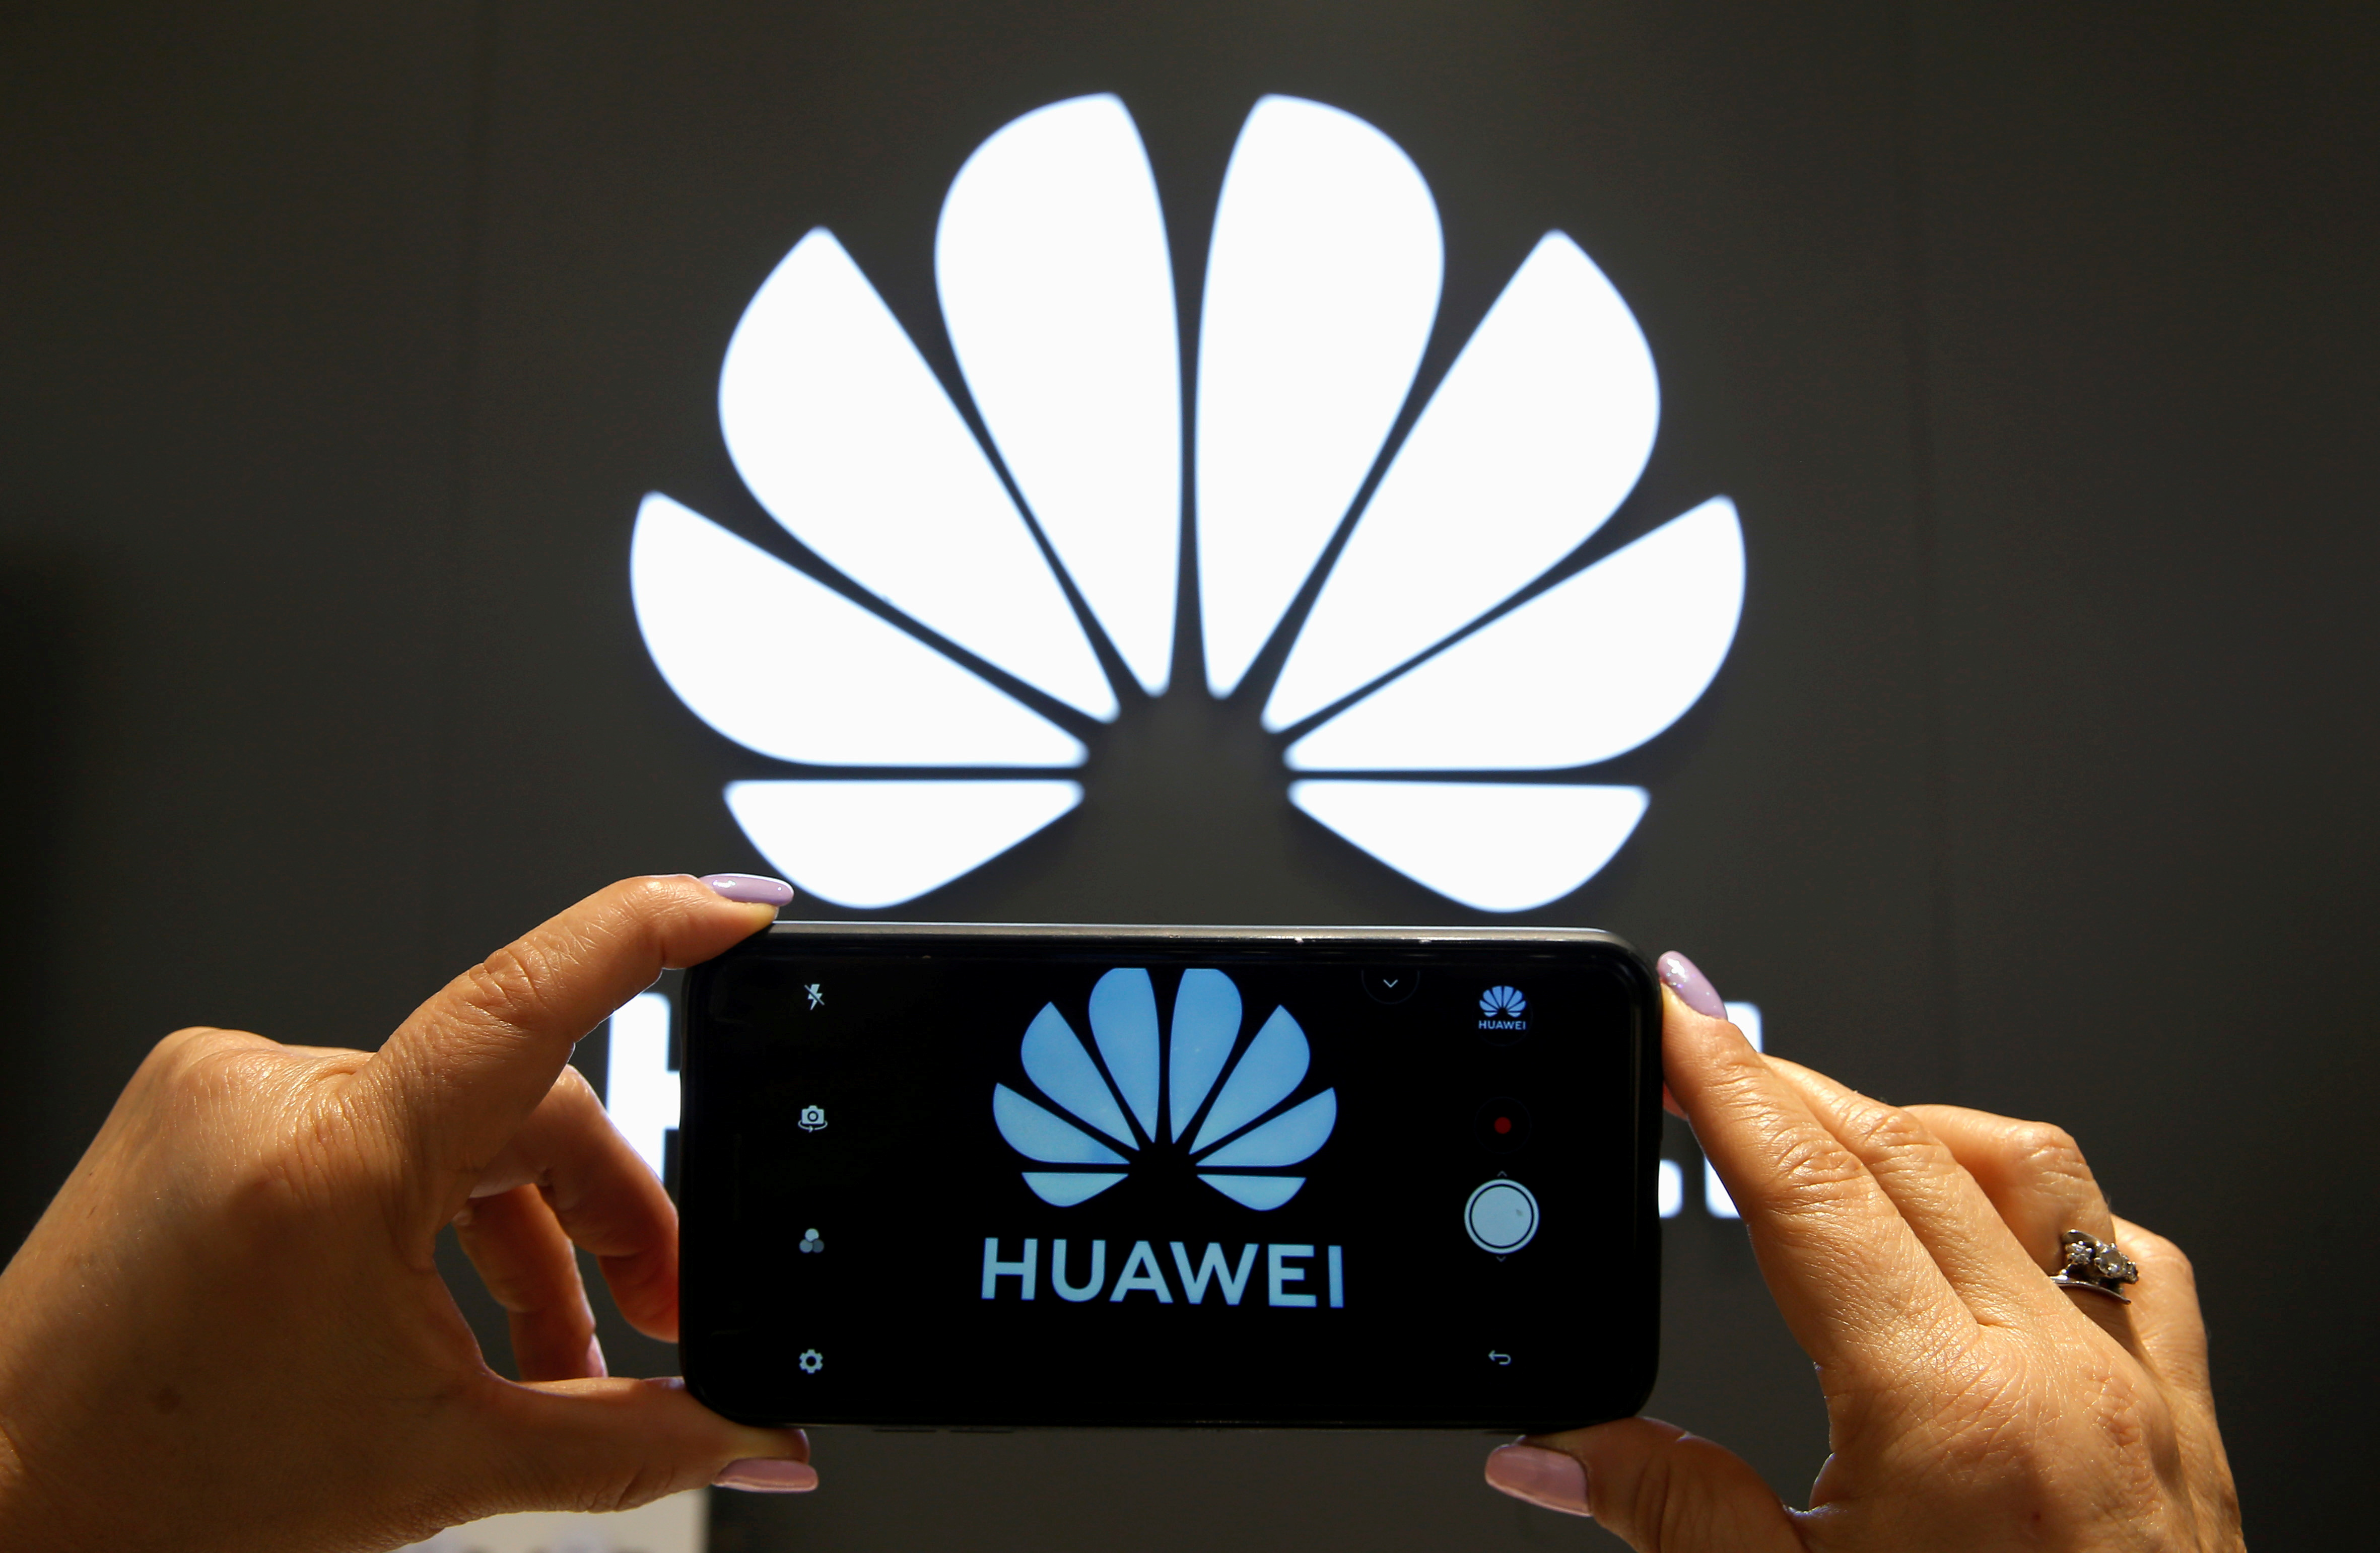 A Huawei logo is seen on a cell phone screen in their store at Vina del Mar, Chile July 18, 2019. REUTERS/Rodrigo Garrido